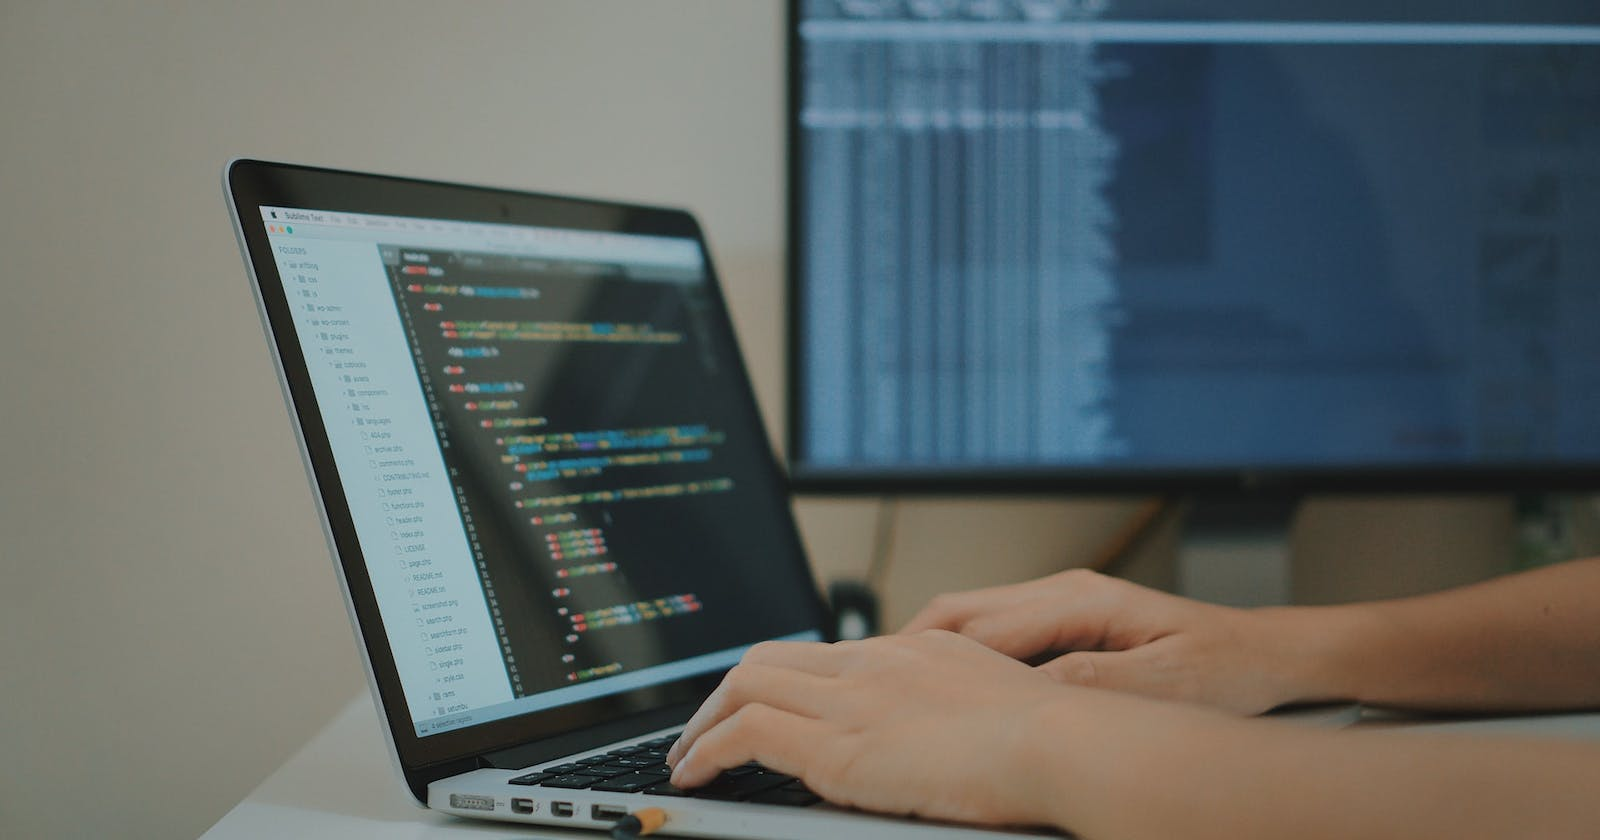 What Is The Best Source To Learn Any Programming Concept